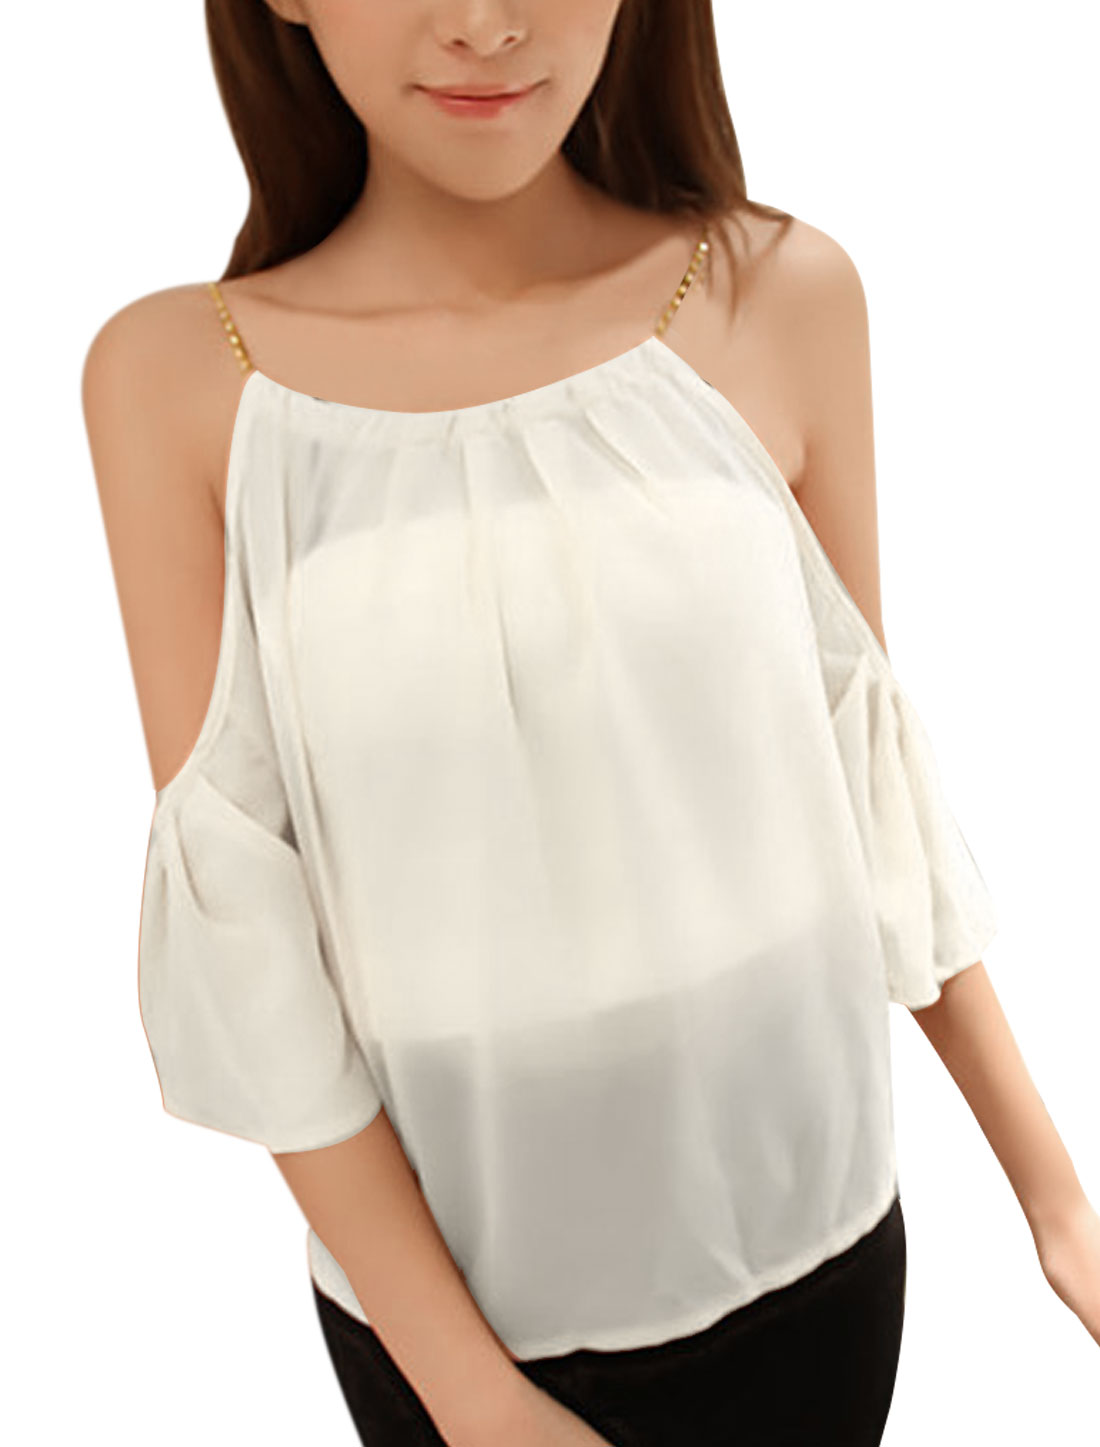 Women Round Hem Transparent Style Scoop Neck Summer Blouse White S